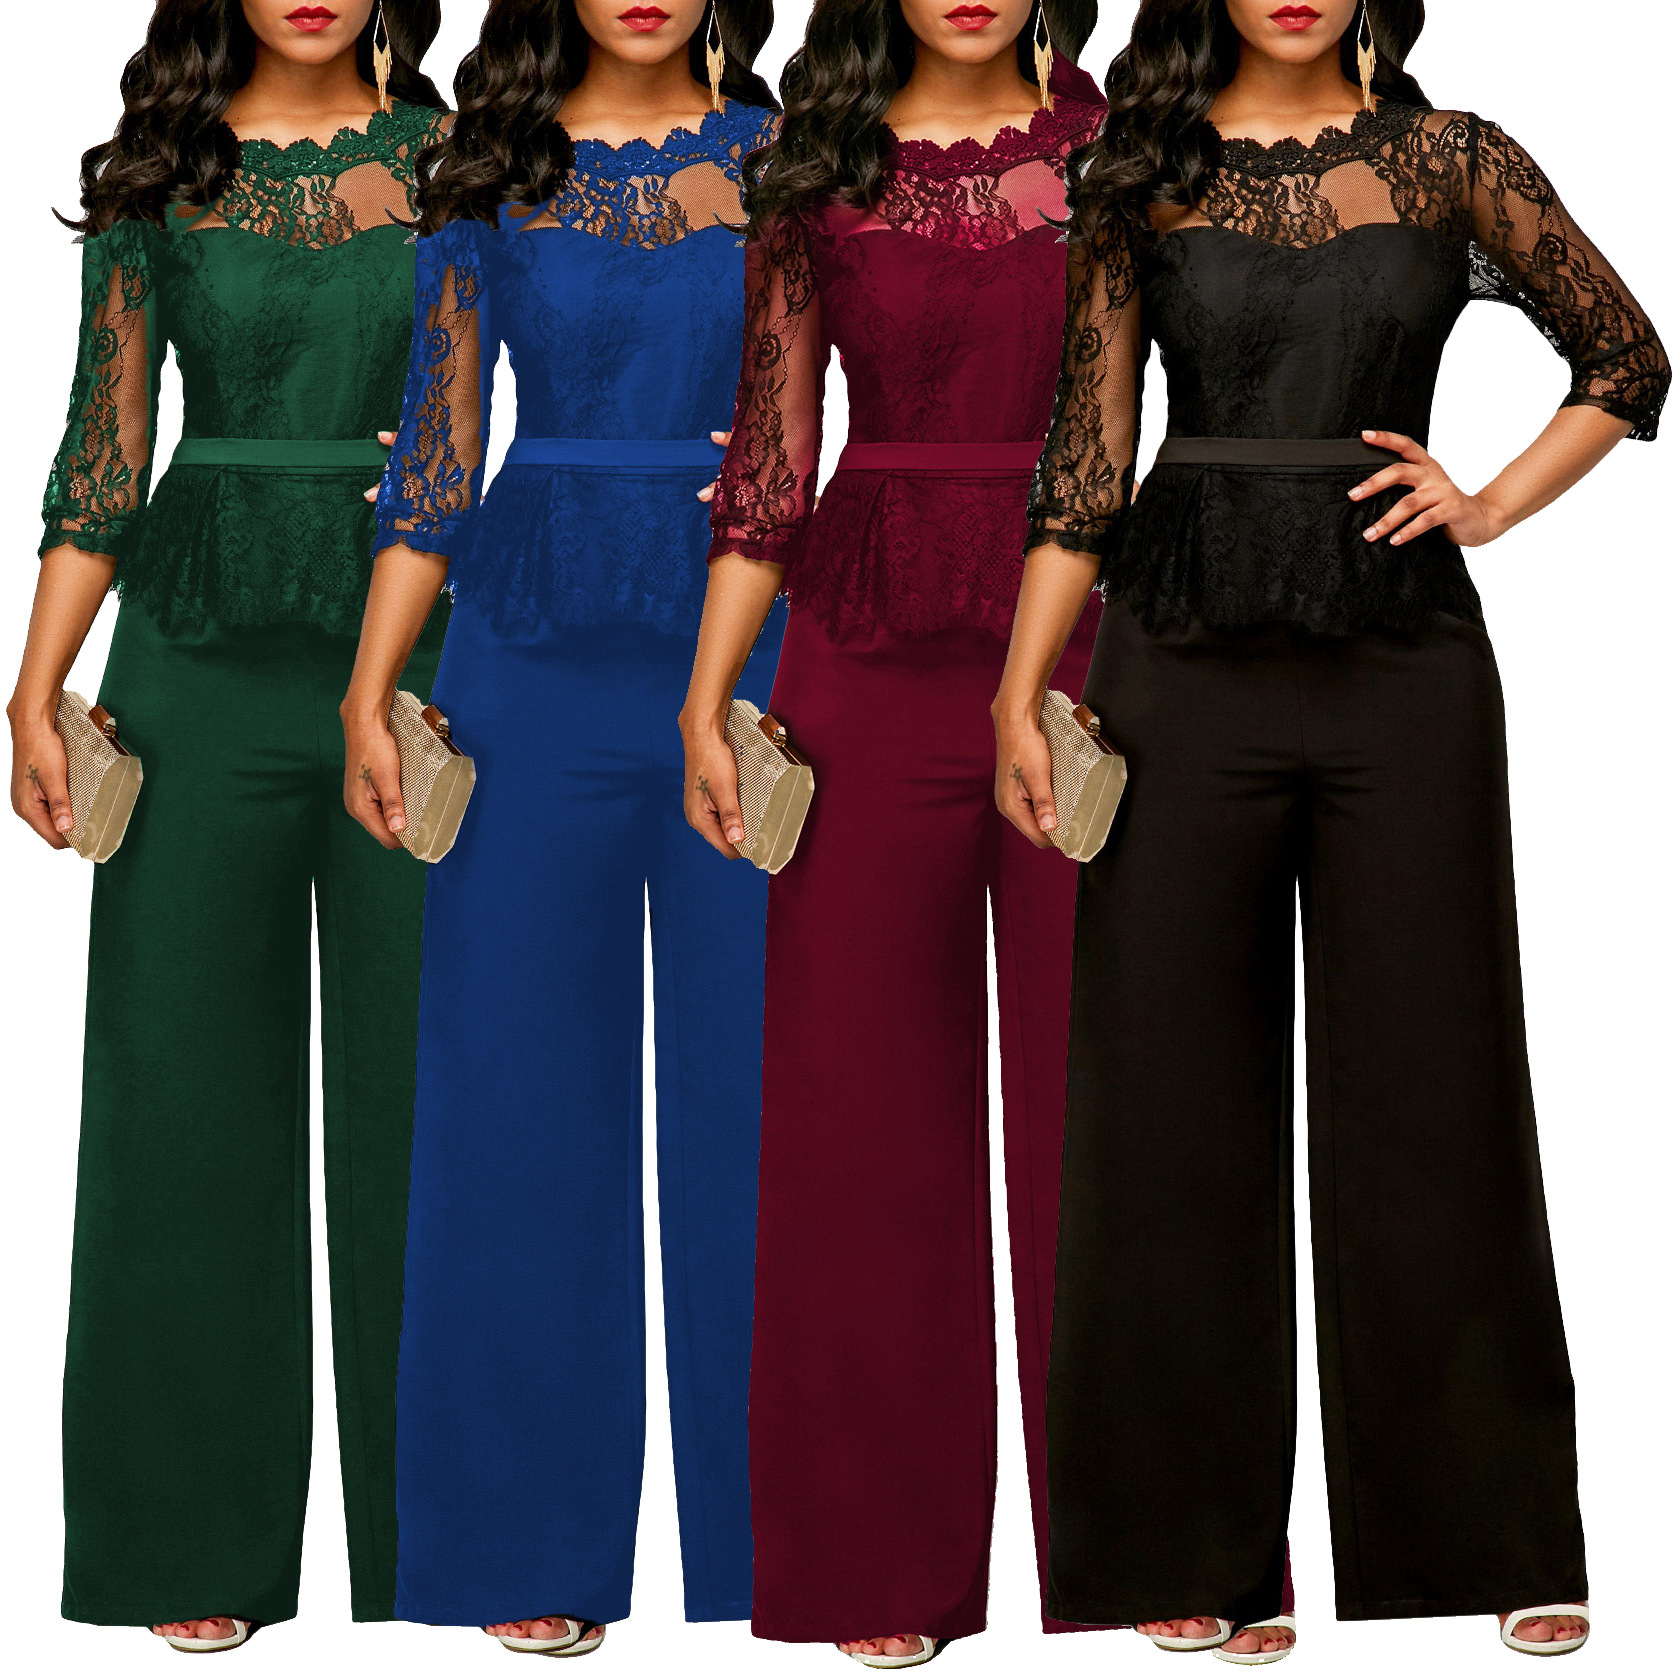 Summer 2020 new European and American women's foreign trade clothes Amazon Dunhuang express eBay sexy lace Jumpsuit